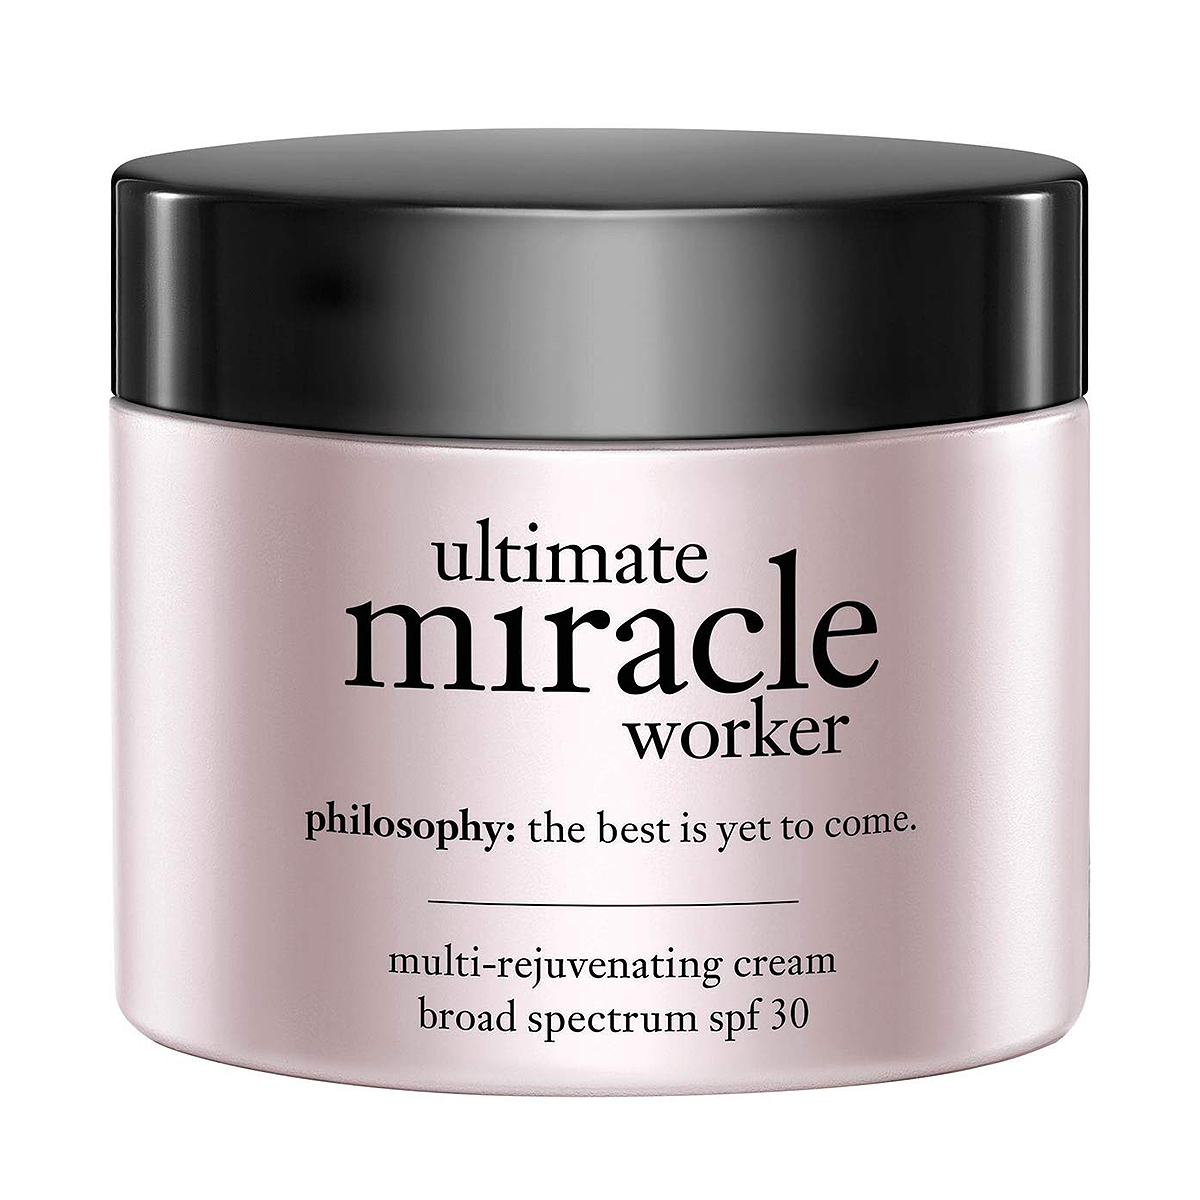 botox-alternative-prime-day-deals-philosophy-ultimate-miracle-worker